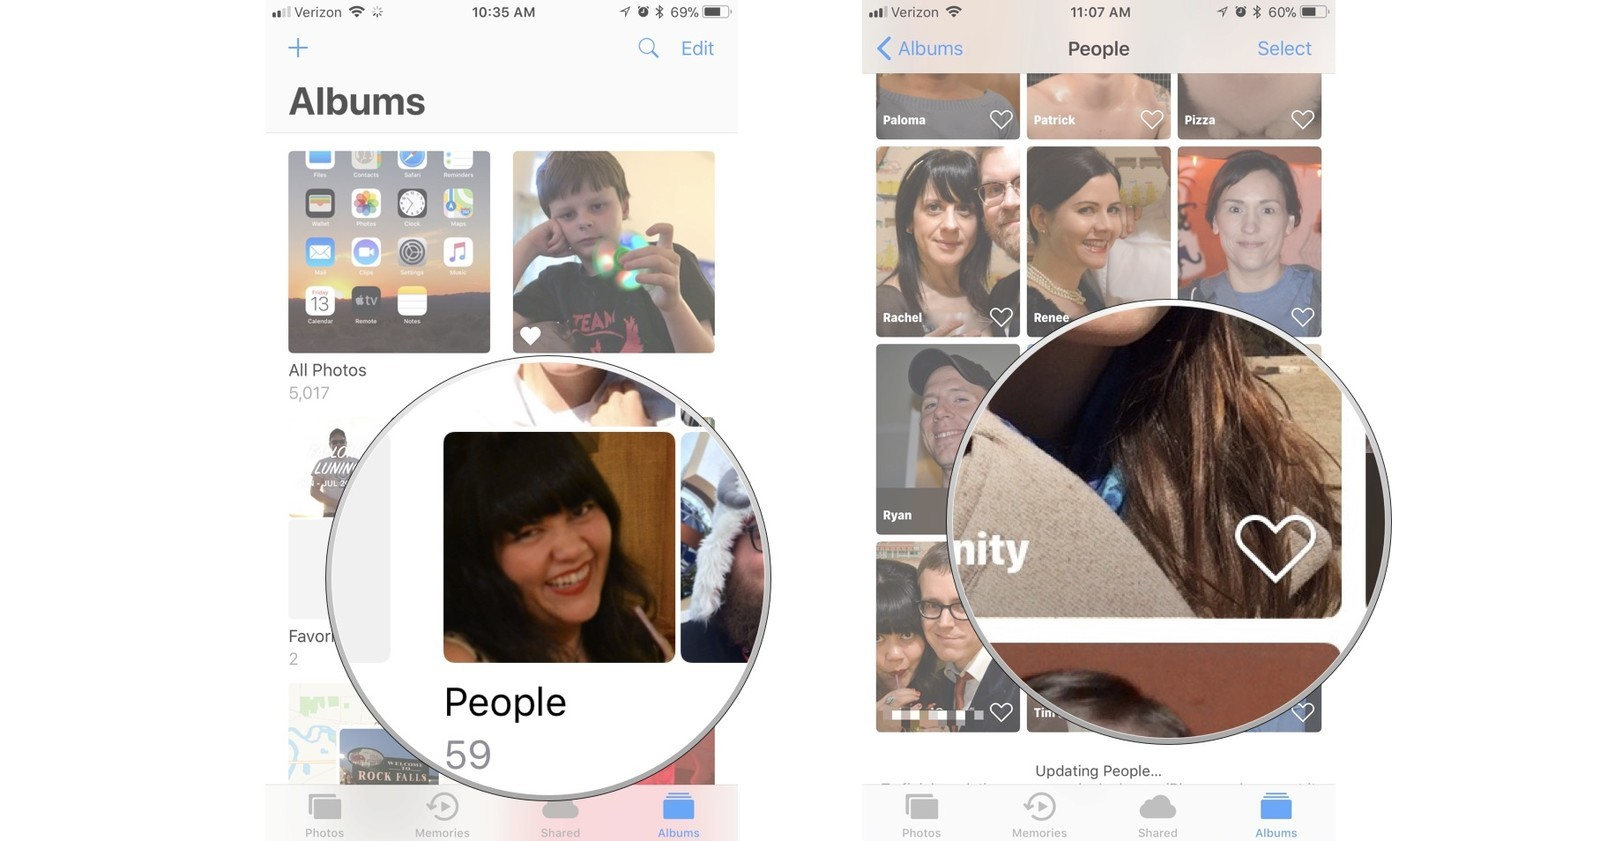 Tap people, then tap the heart next to a profile